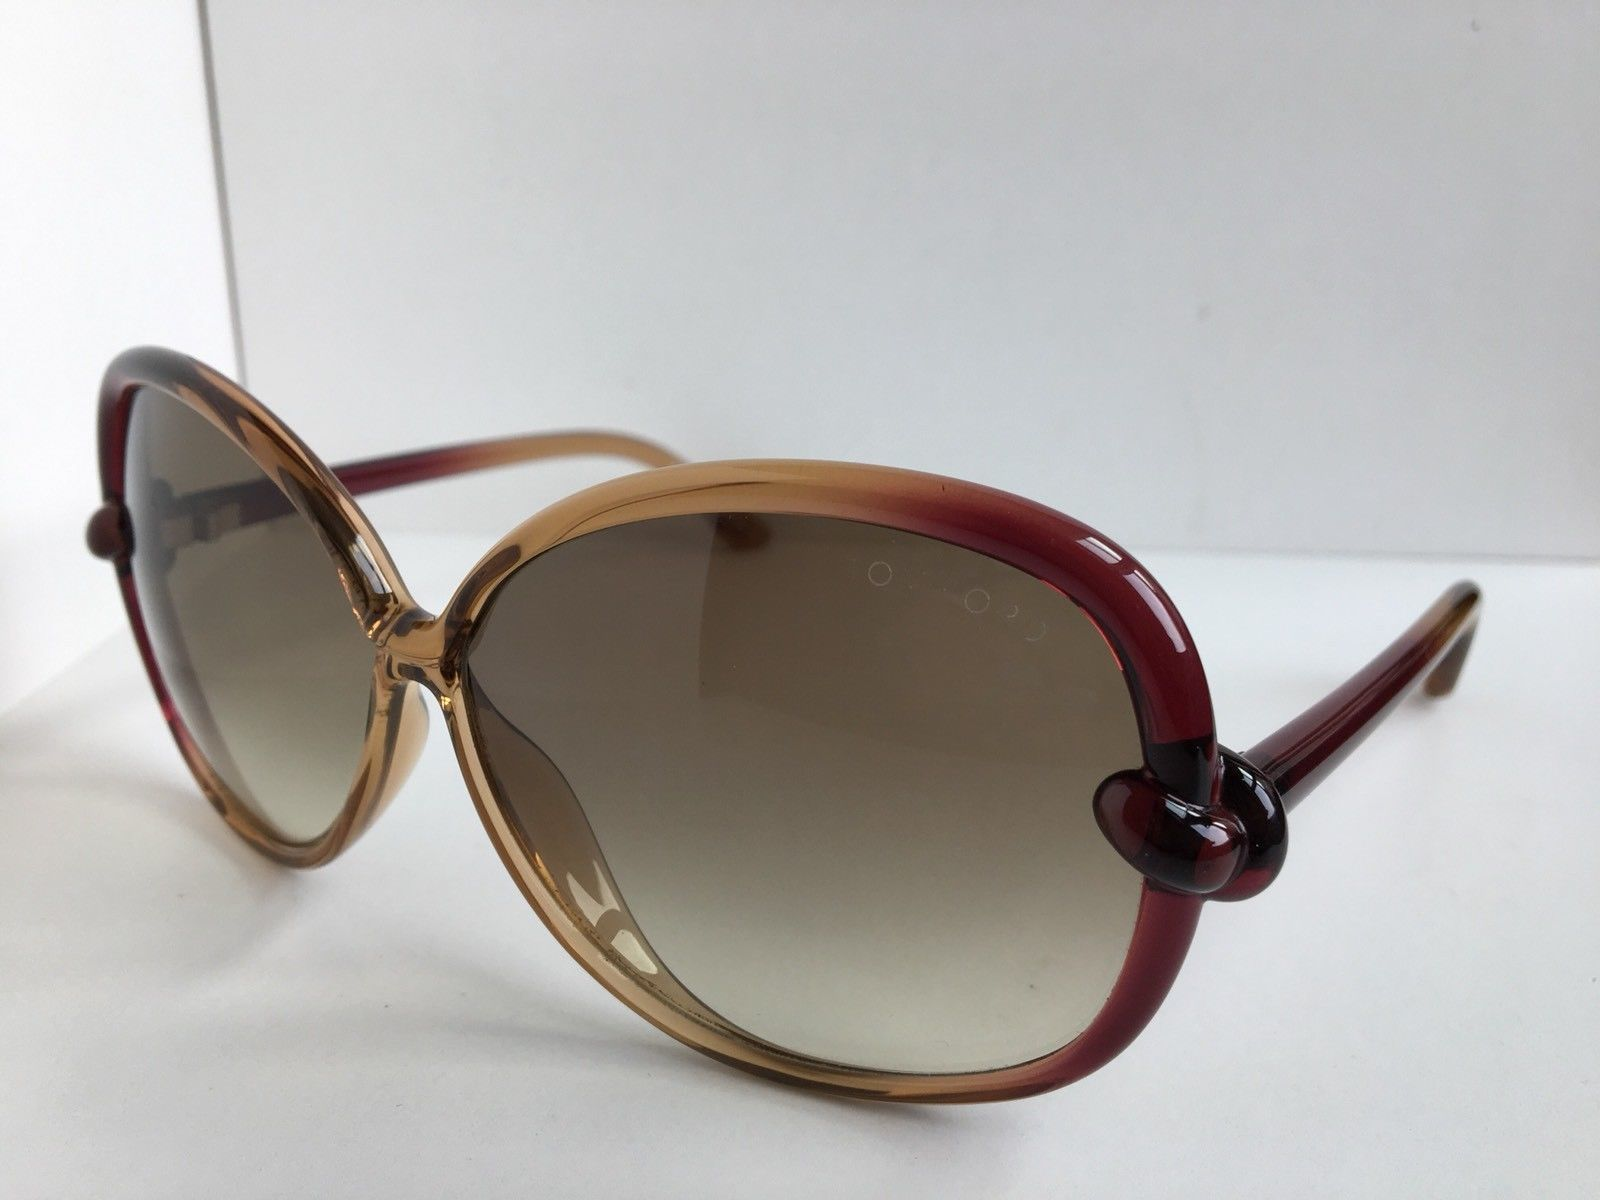 65201ec70a New Tom Ford Ingrid TF 163 TF163 71F 62mm and 21 similar items